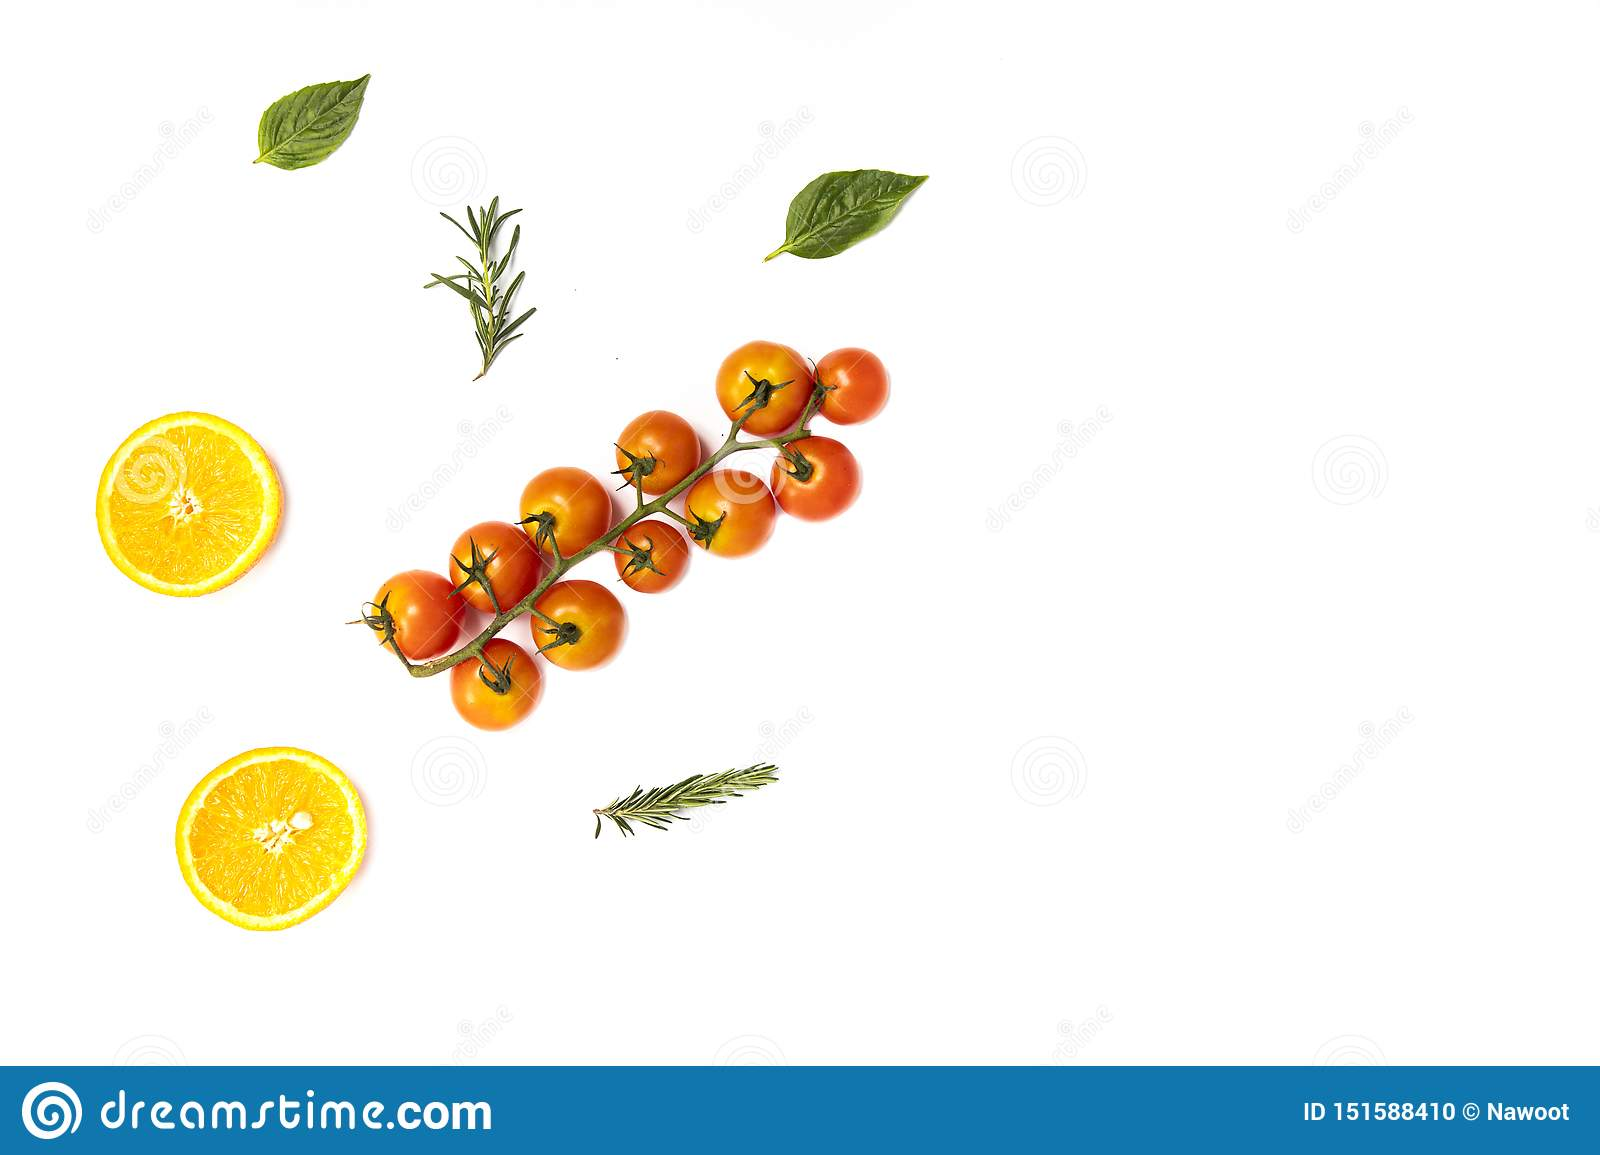 summer fruits and vegetables pattern